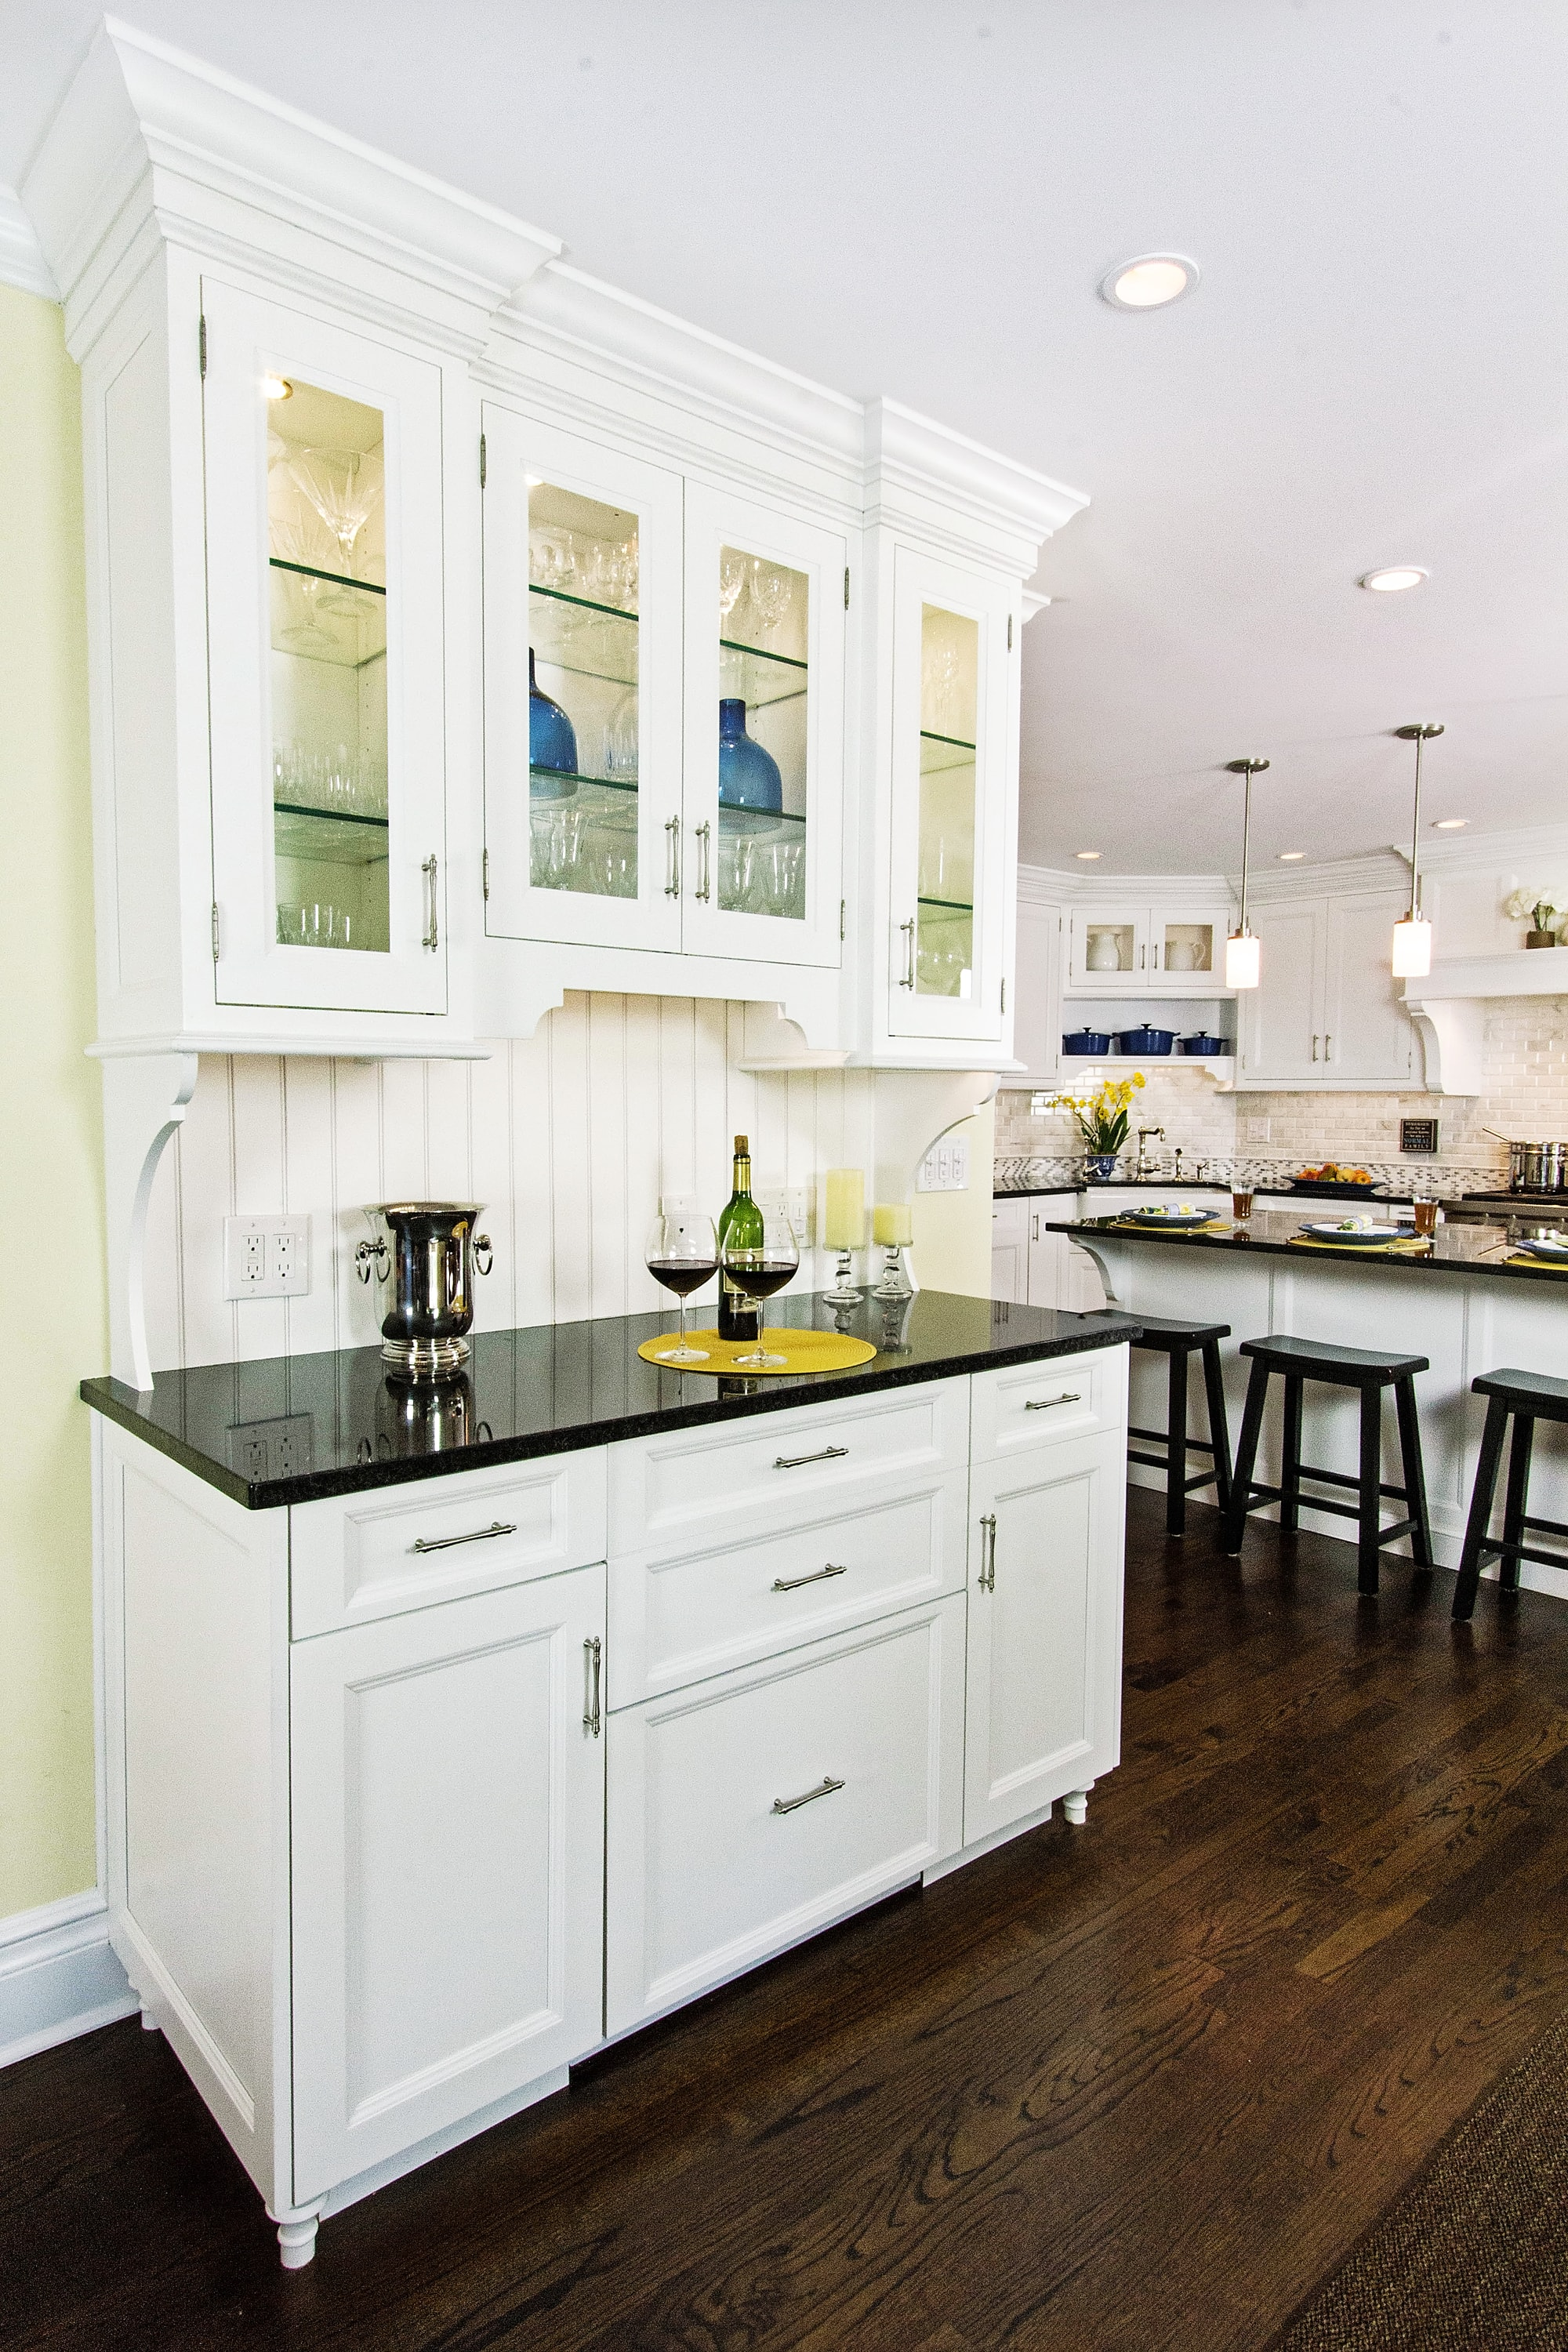 Transitional style kitchen with wine glass storage